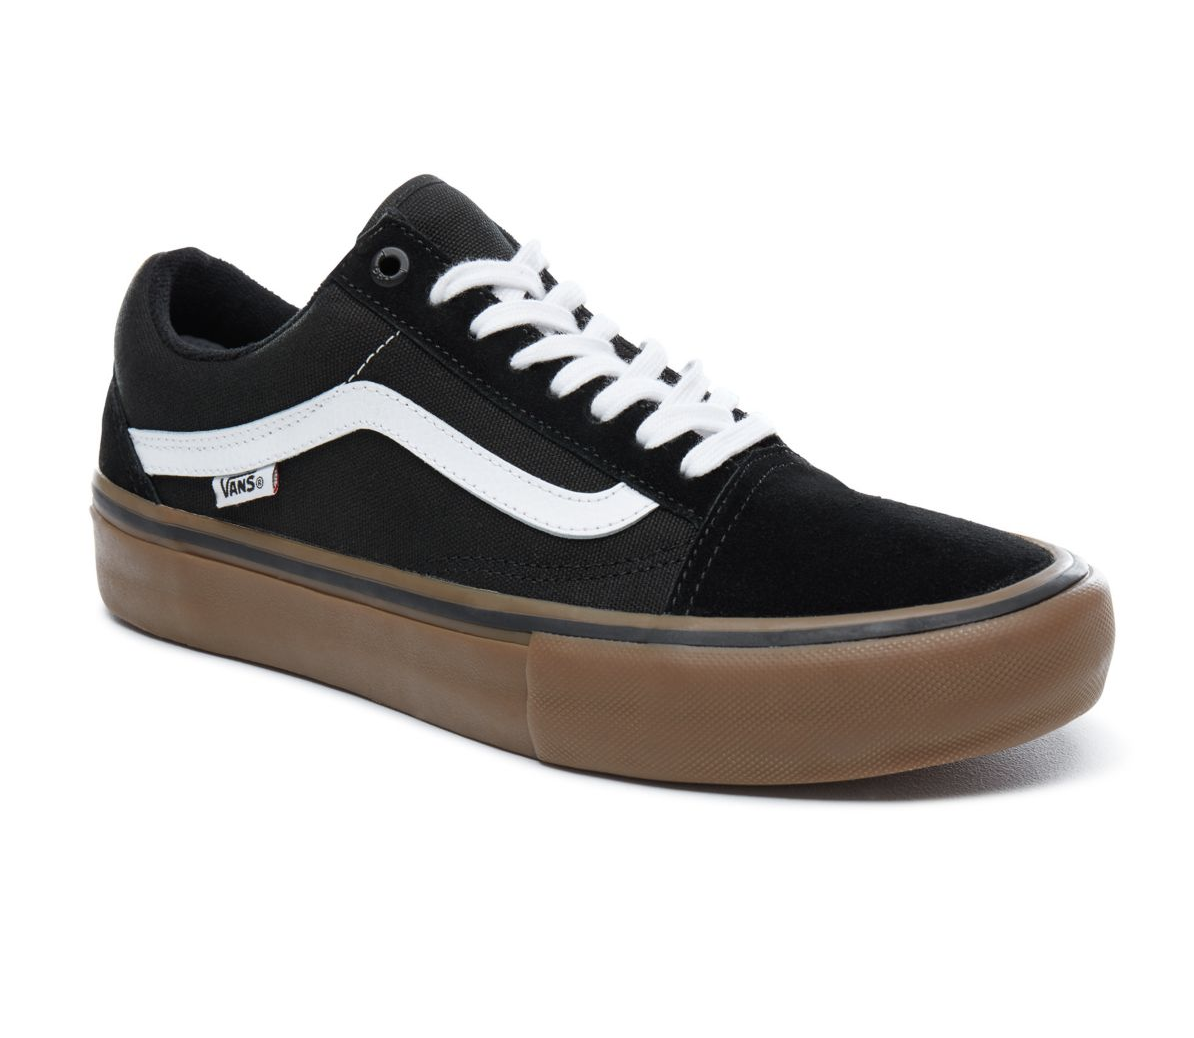 vans chaussures png